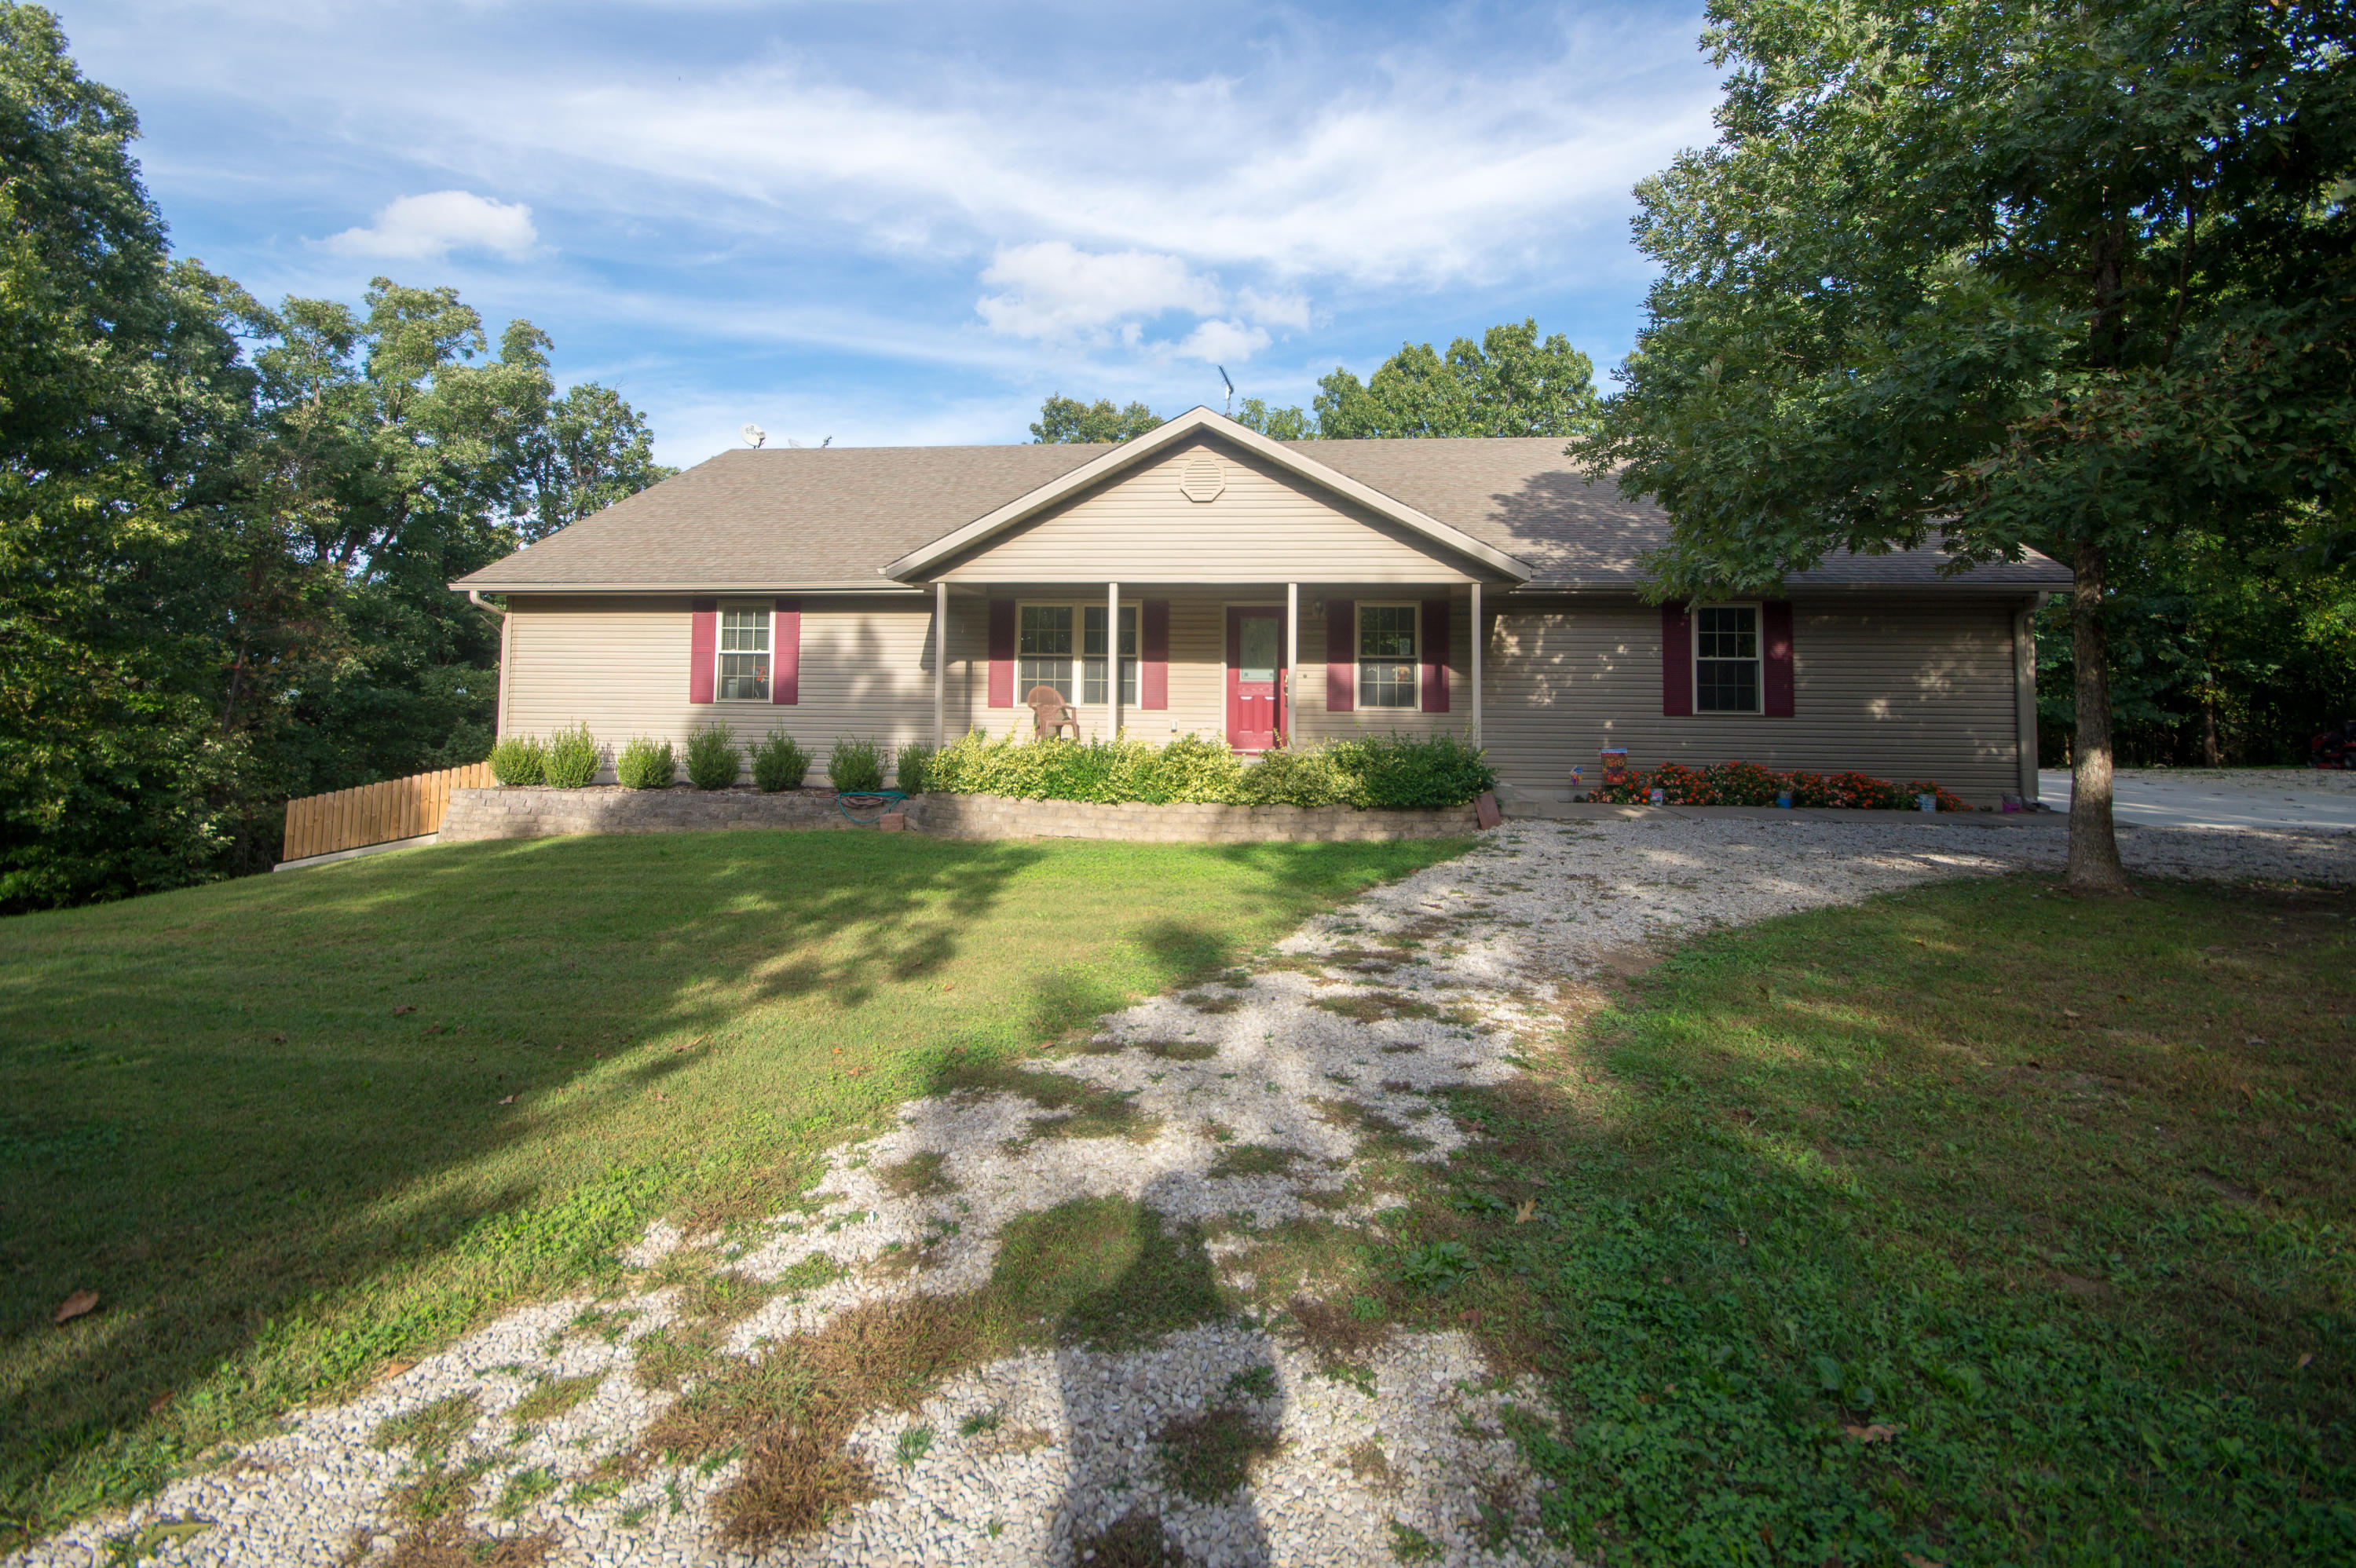 7410 North State Highway 125 Strafford, MO 65757